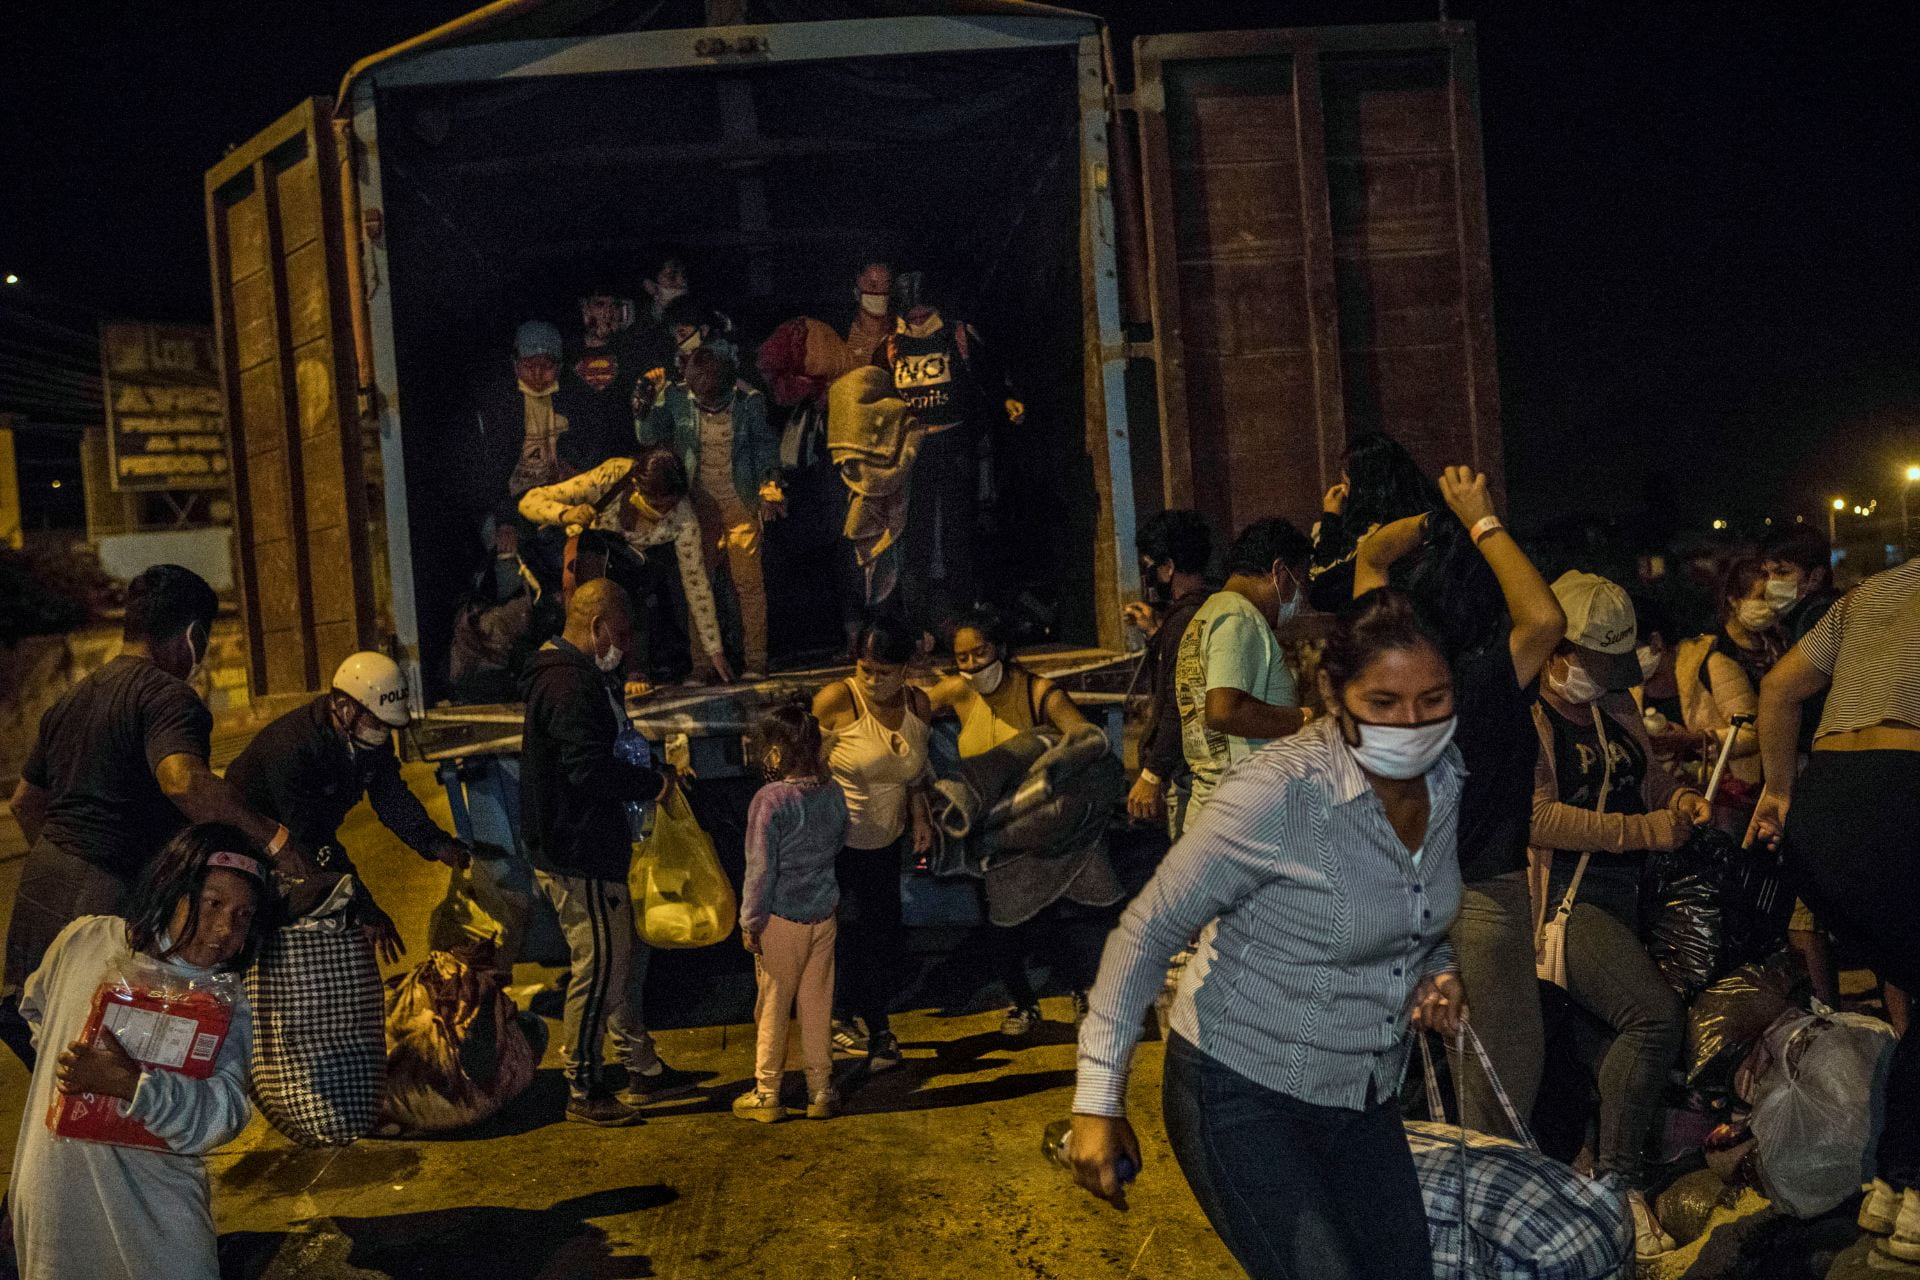 People fleeing Covid in container truck